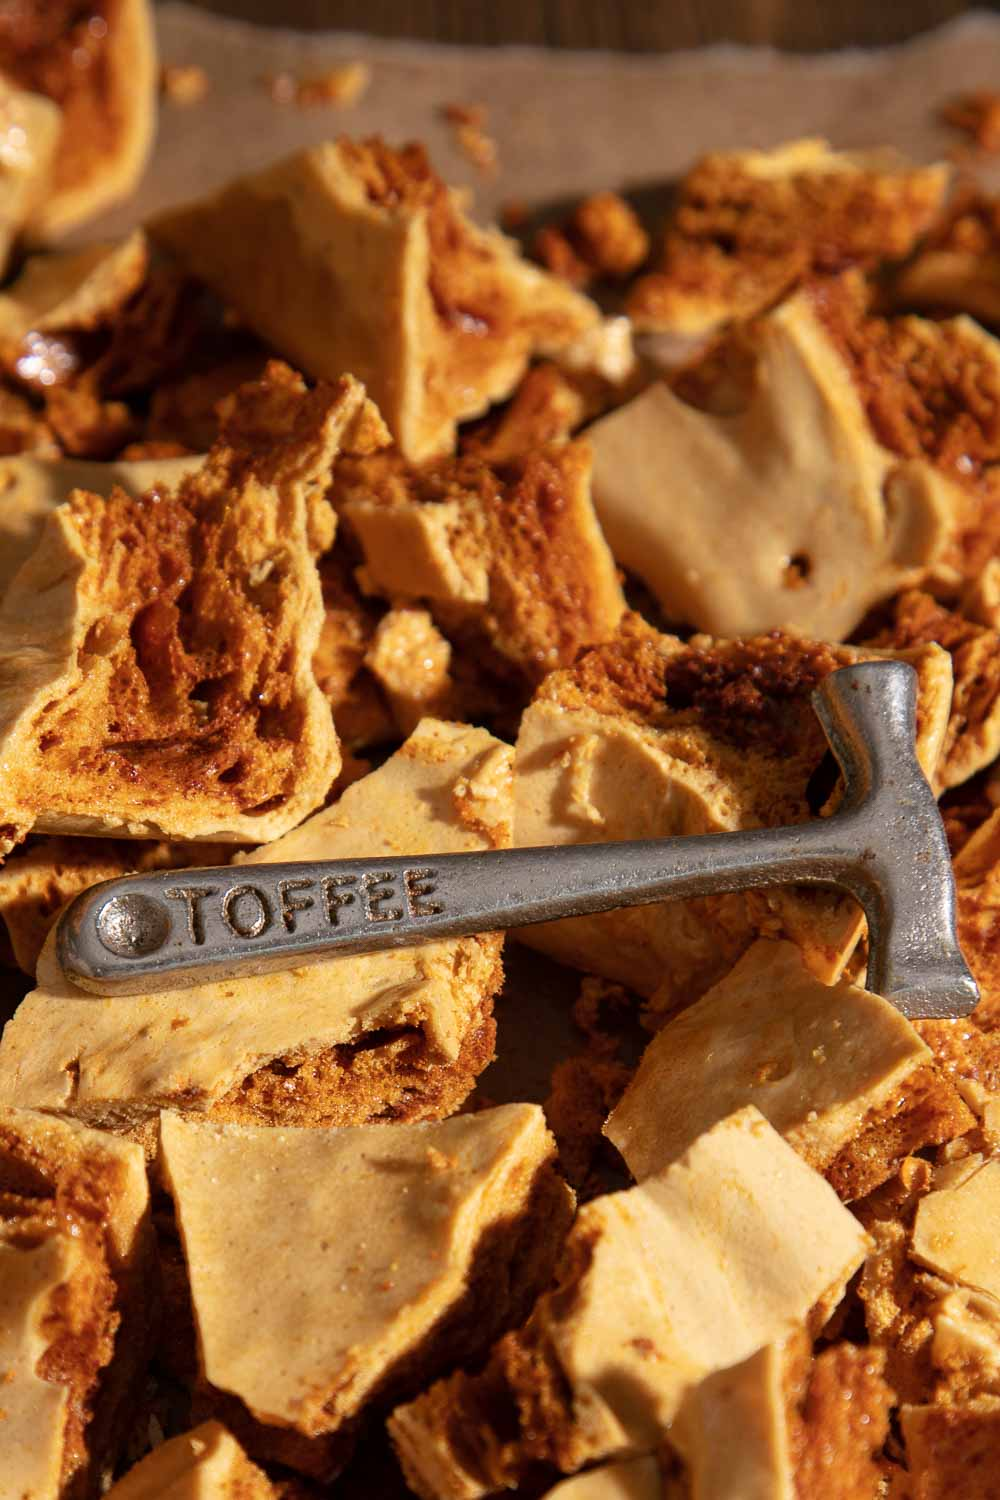 Cinder Toffee with vintage metal toffee hammer.